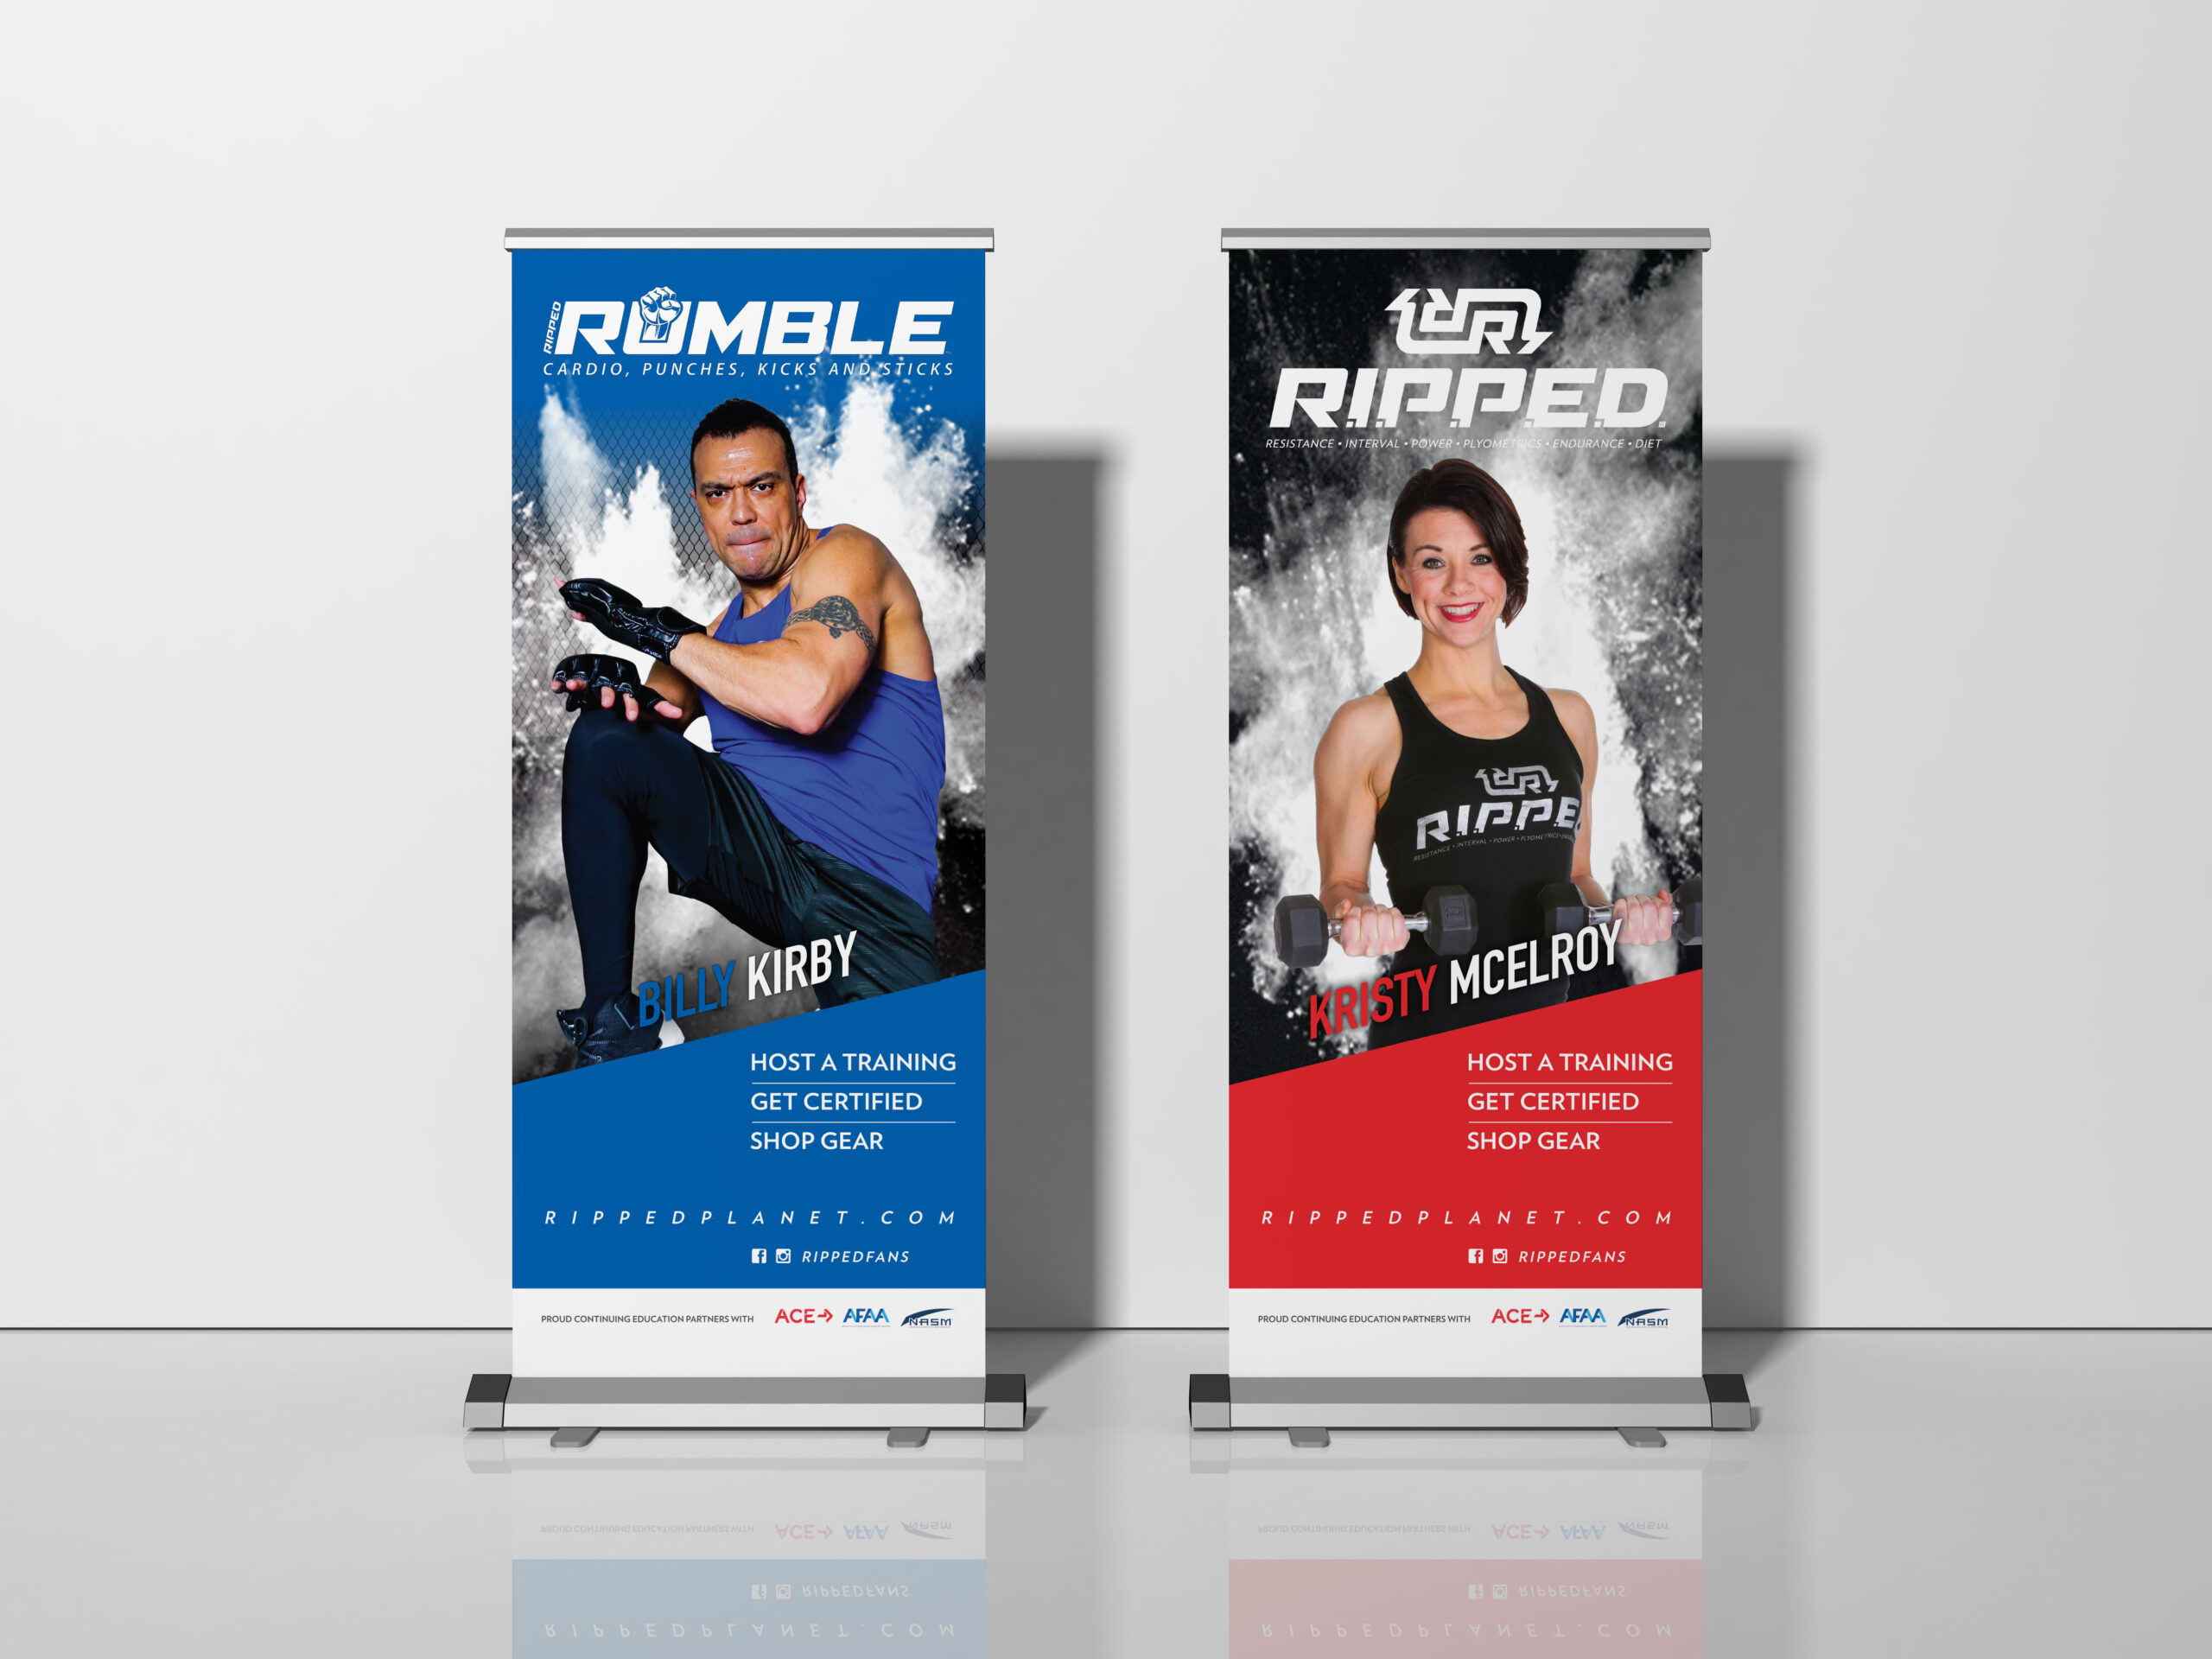 R.I.P.P.E.D. and Rumble Pop-Up Banners